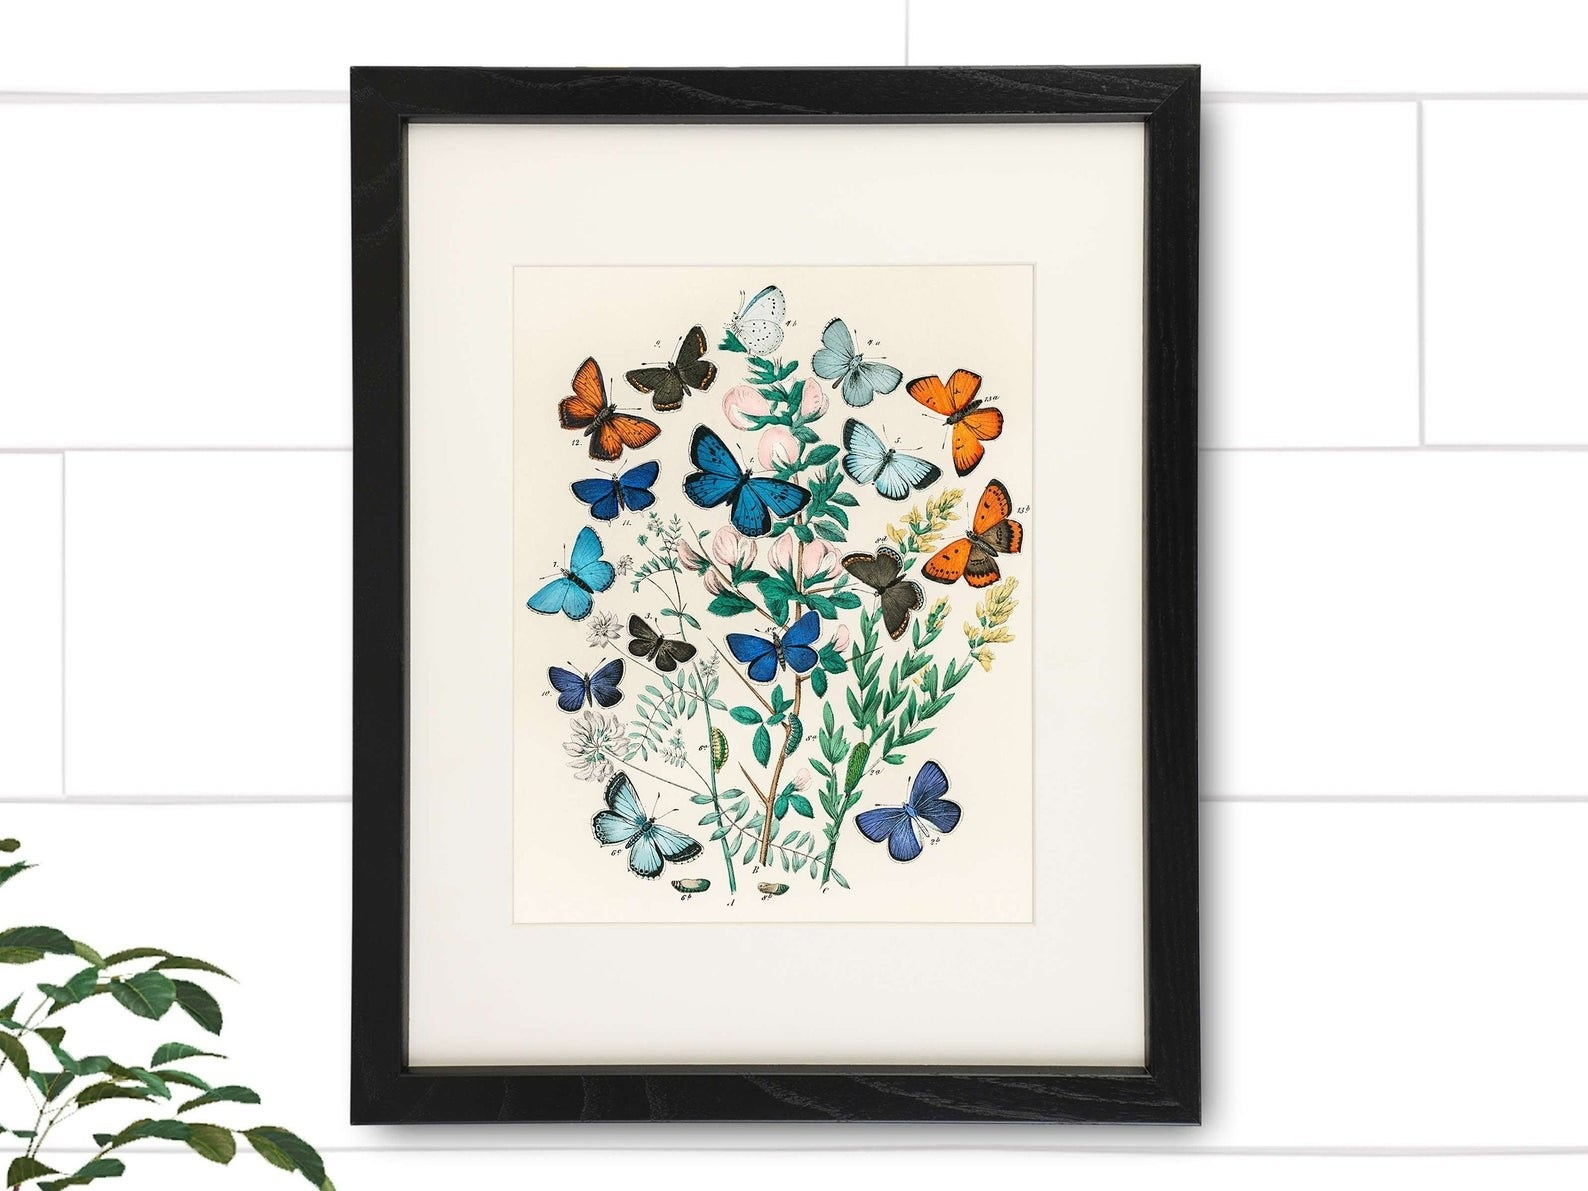 Butterfly print in black frame hanging on wall